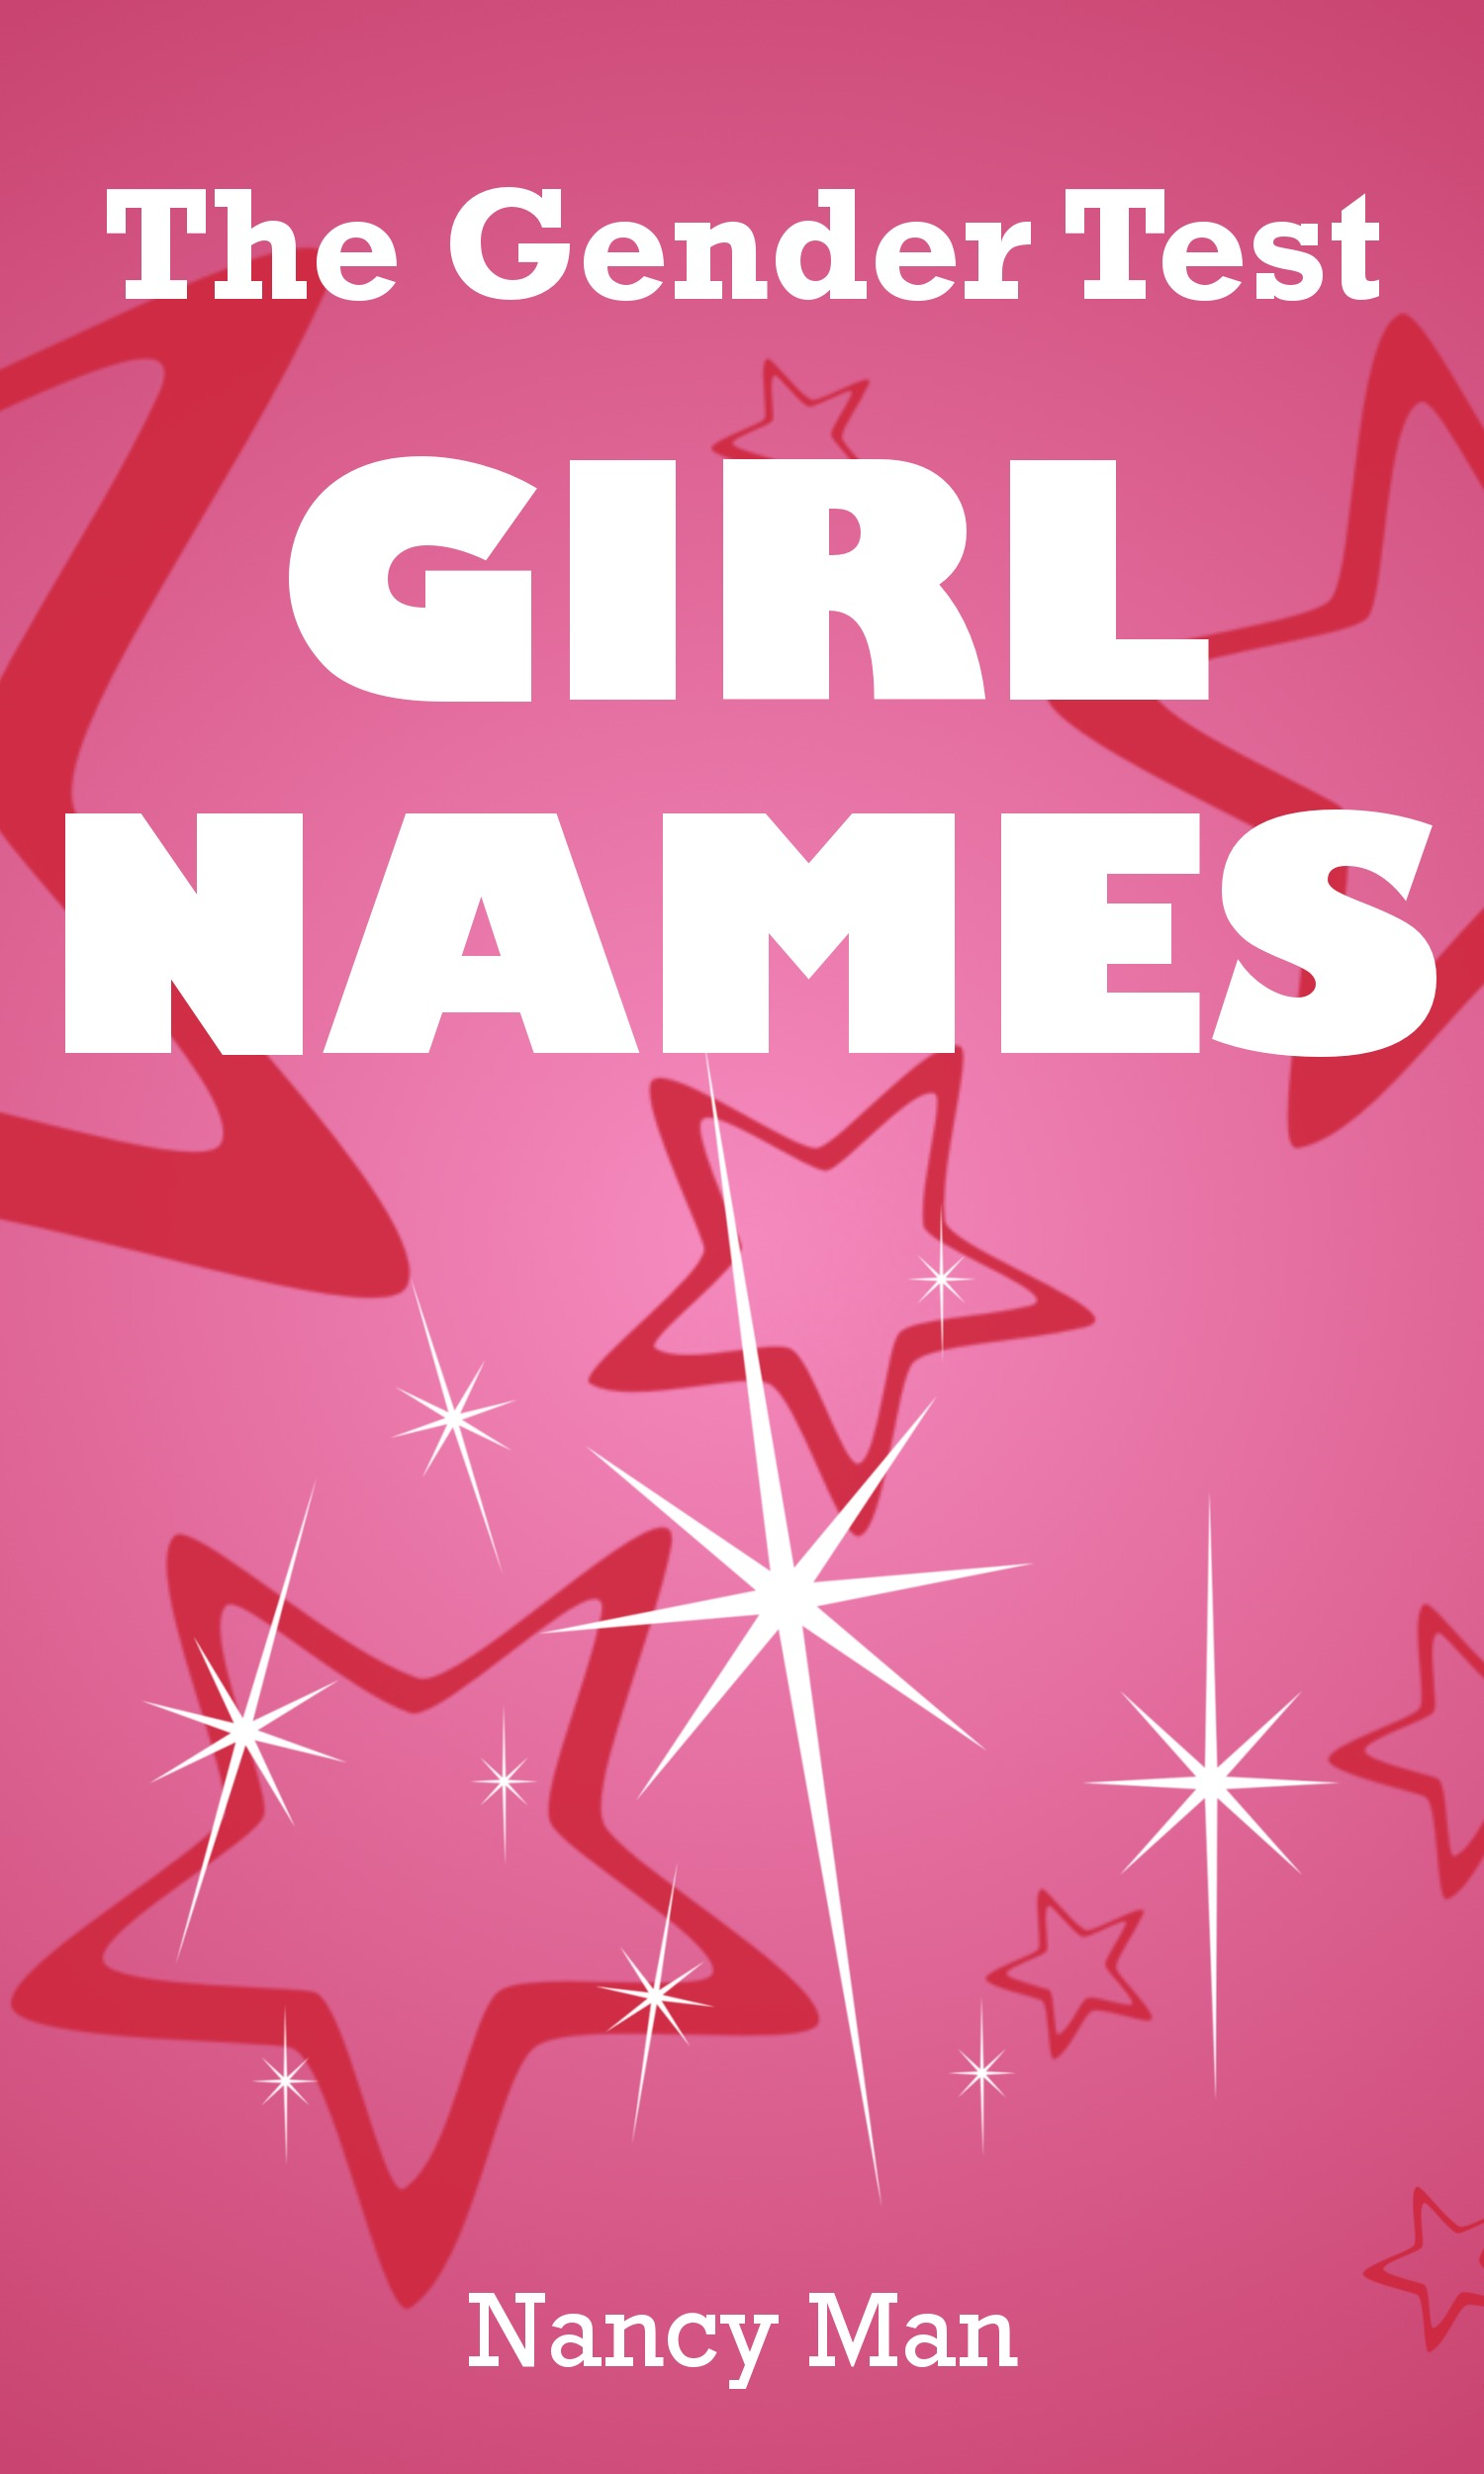 The Gender Test: Girl Names